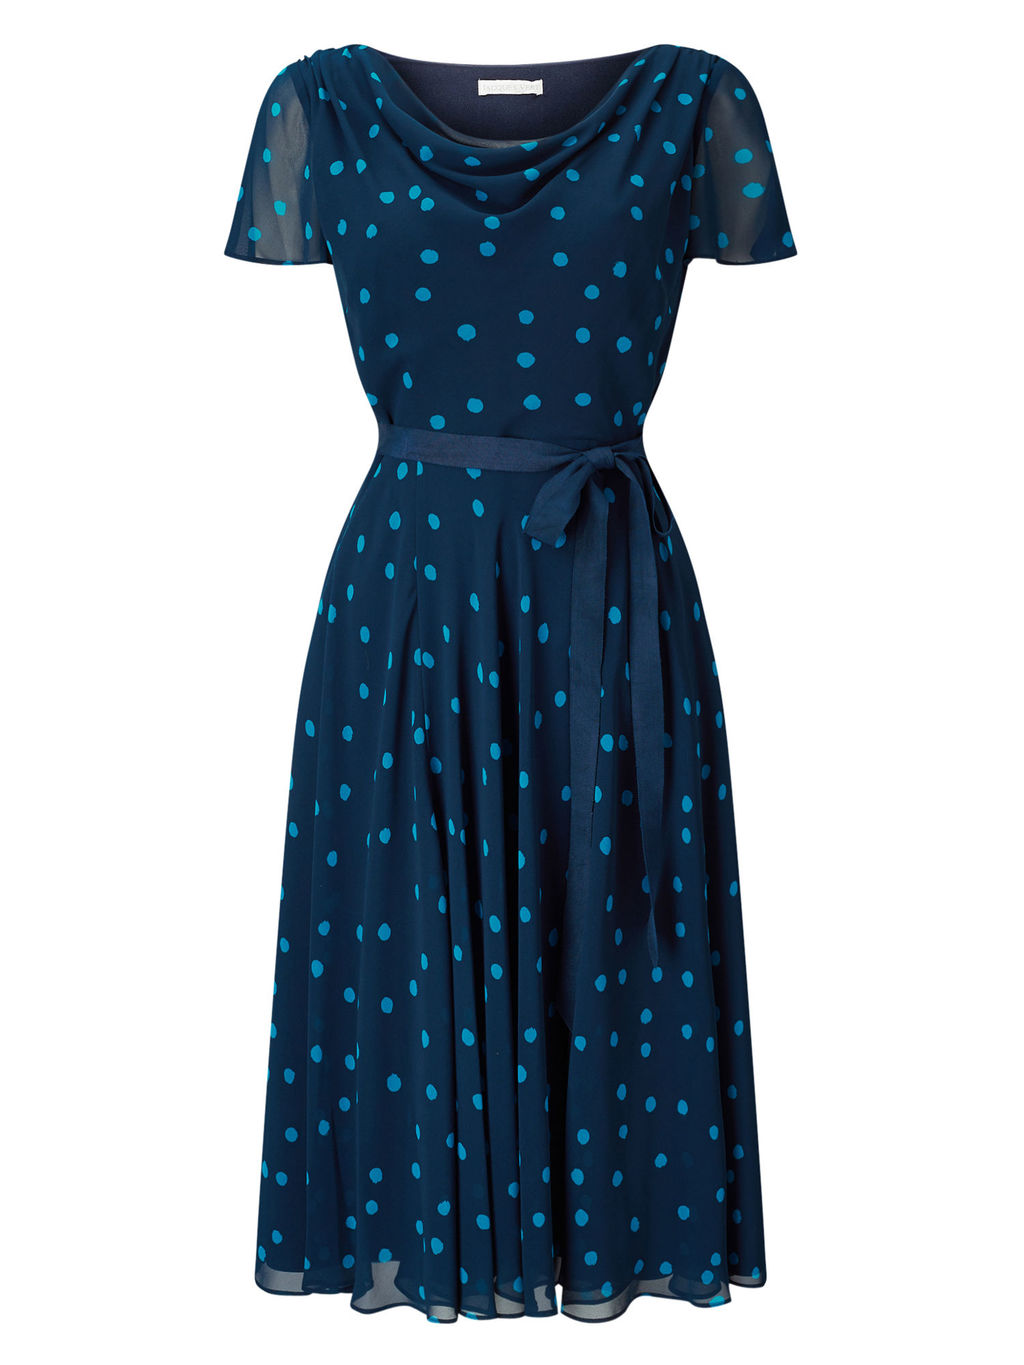 Soft Prom Spot Dress - length: below the knee; neckline: cowl/draped neck; pattern: polka dot; secondary colour: pale blue; predominant colour: navy; occasions: evening; fit: fitted at waist & bust; style: fit & flare; fibres: polyester/polyamide - 100%; sleeve length: short sleeve; sleeve style: standard; texture group: sheer fabrics/chiffon/organza etc.; pattern type: fabric; multicoloured: multicoloured; season: s/s 2016